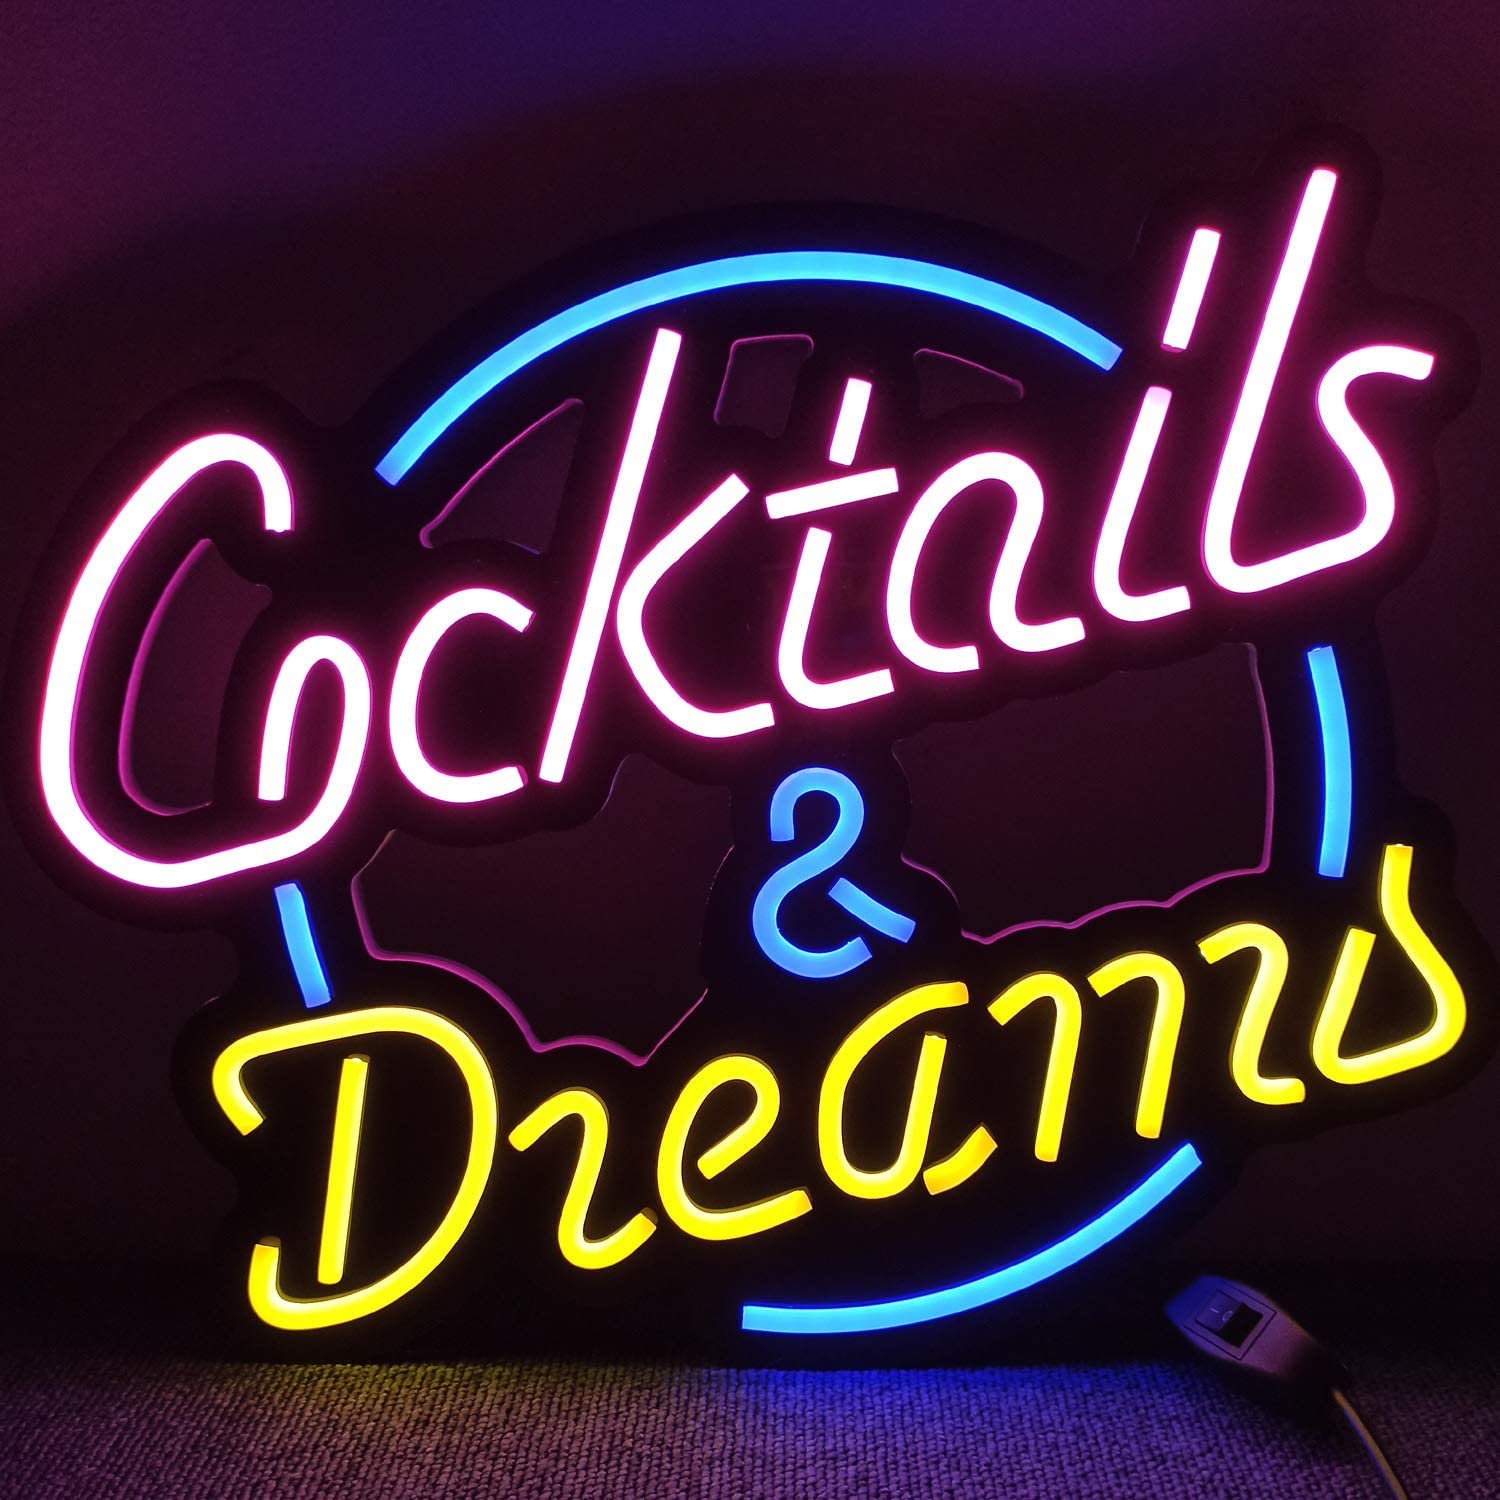 Cocktails & Dreams LED Neon Light Signs for Beer Bar Club Bedroom Office Hotel Pub Cafe Wedding Birthday Party Man Cave Art Wall